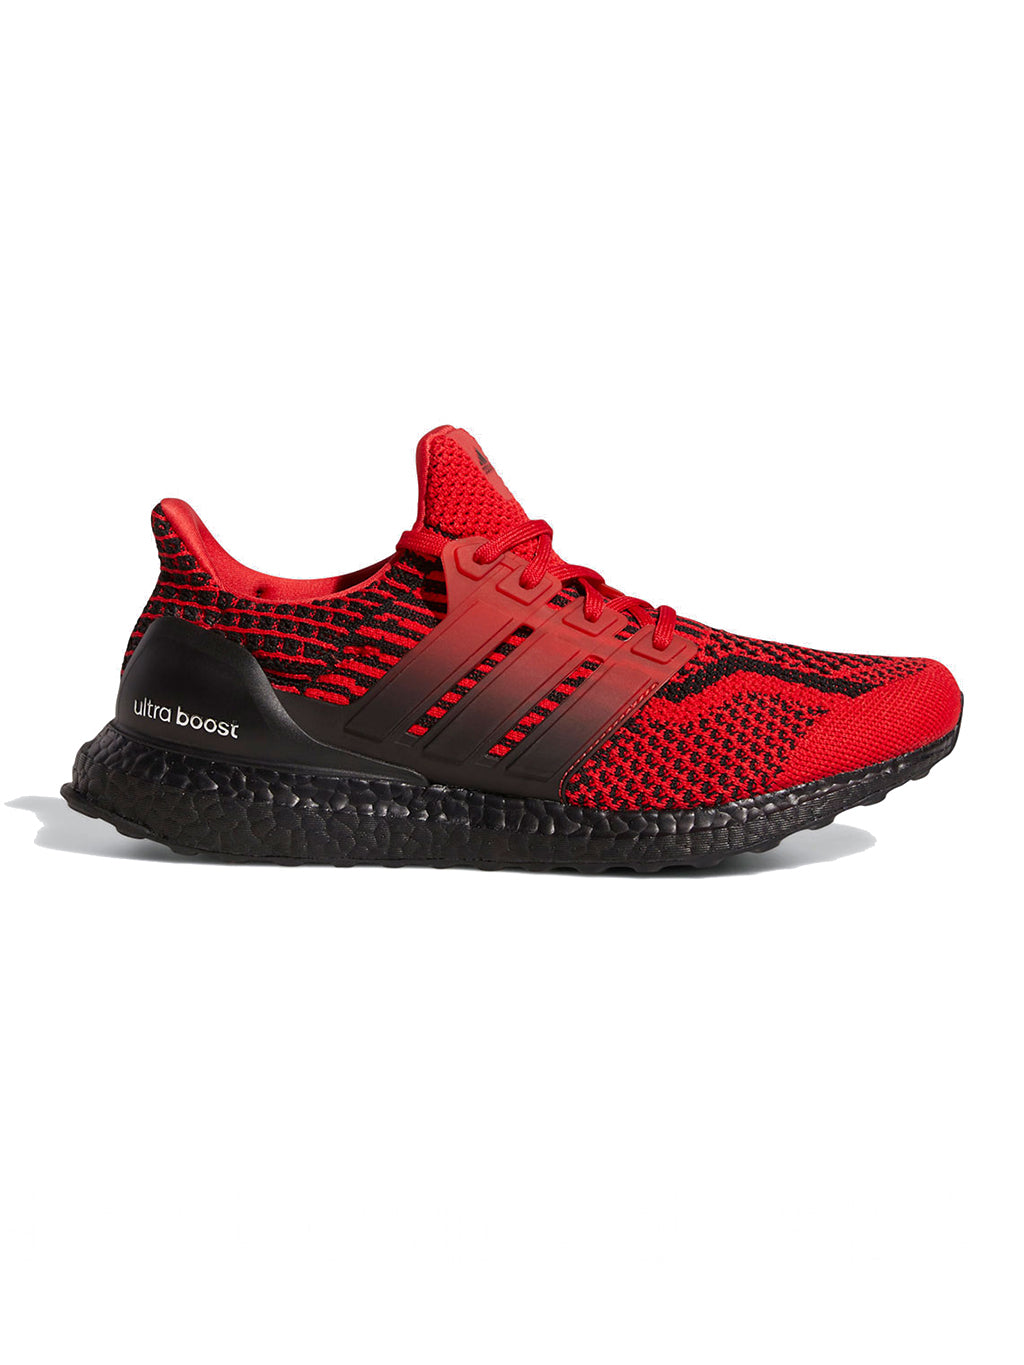 Red & Black Ultraboost 5.0 DNA Running Shoes